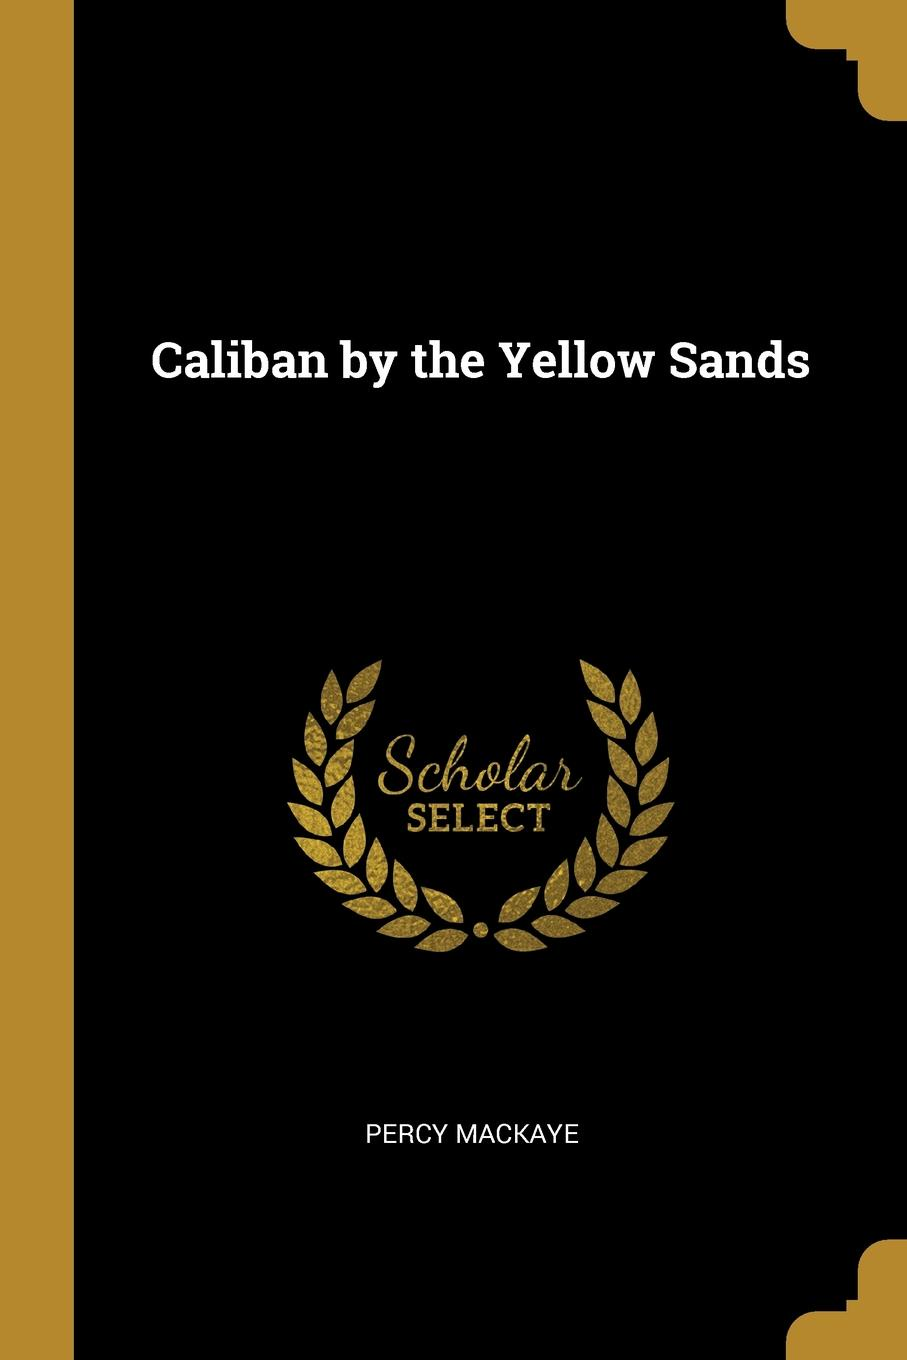 Percy MacKaye Caliban by the Yellow Sands